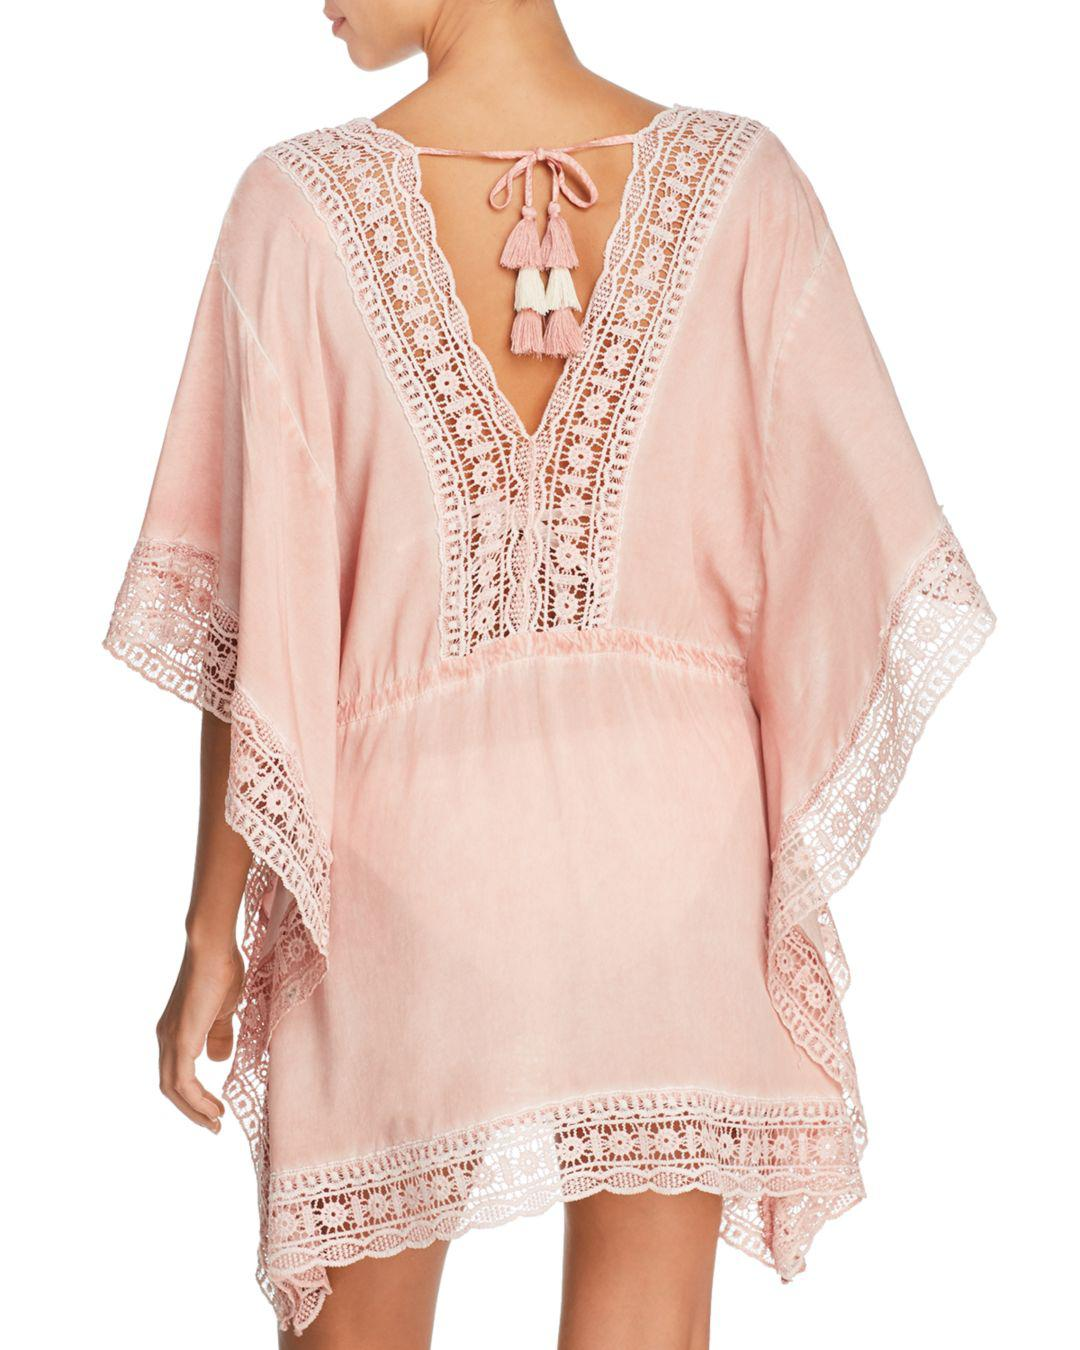 ef35dfd7db6a8 Lyst - Surf Gypsy Embroidered-trim Tunic Swim Cover-up in Pink